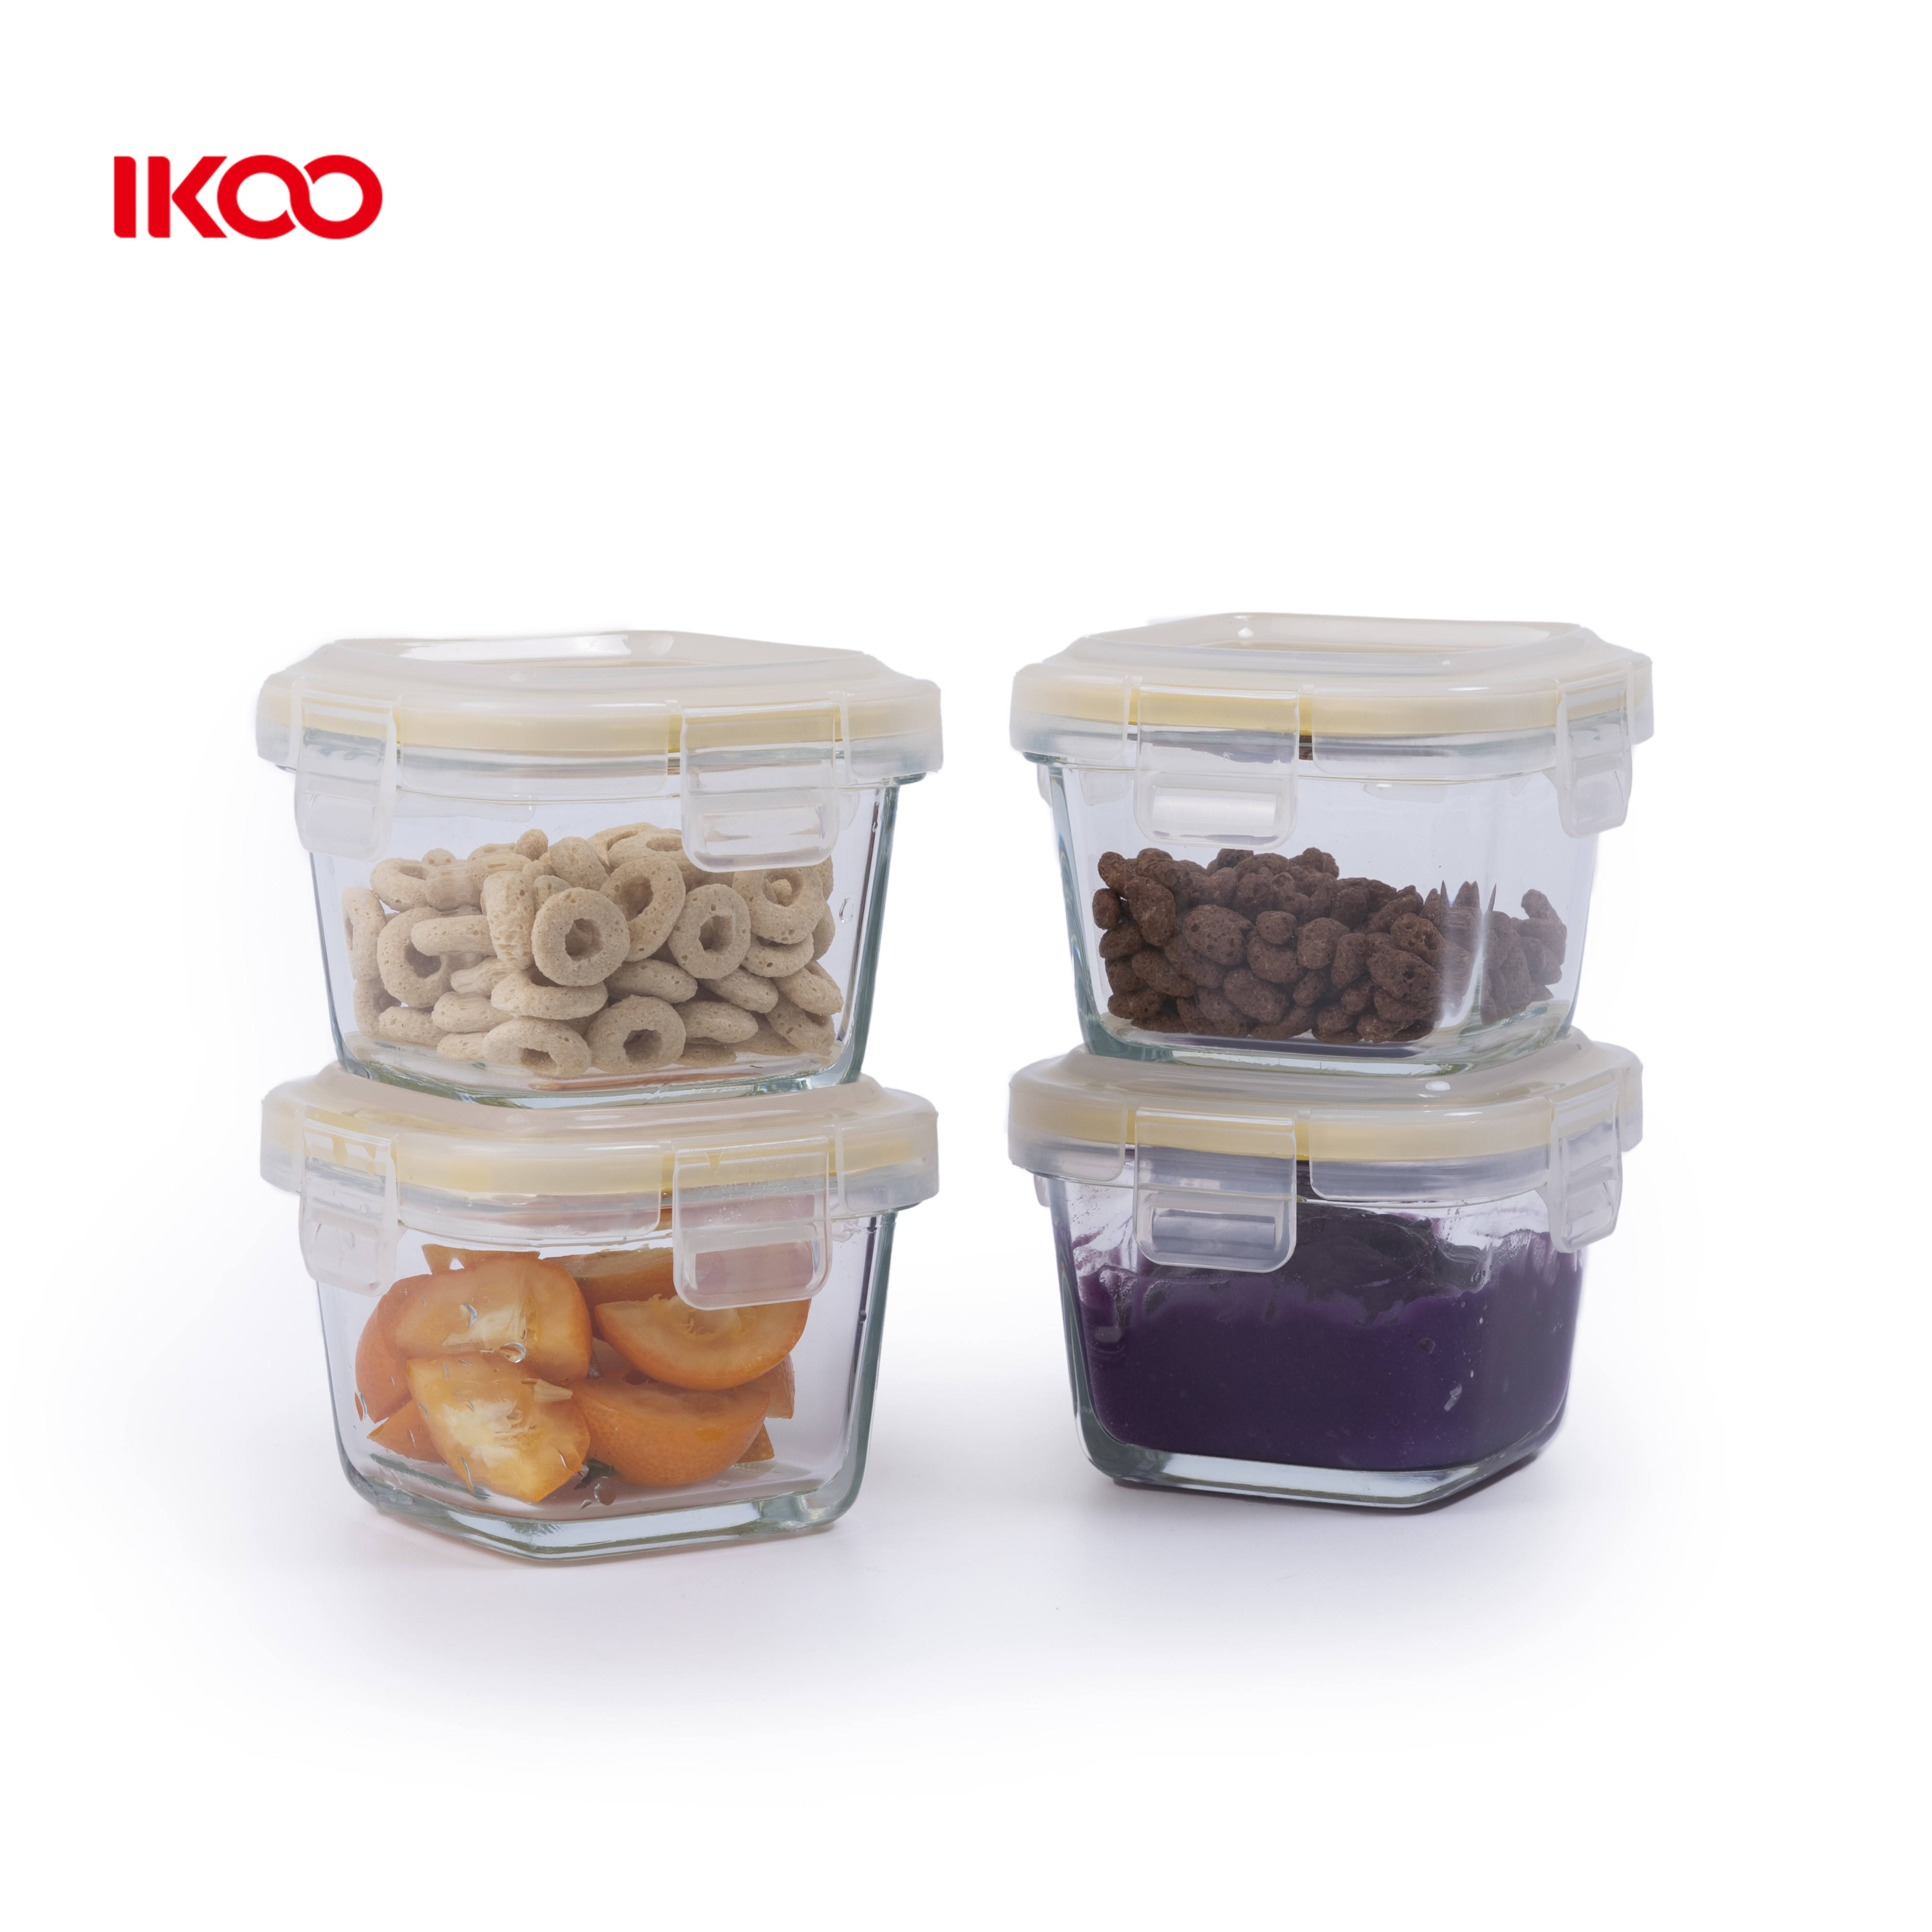 Microwave oven safe Ikoo glass baby food storage kids children bento kids lunch box